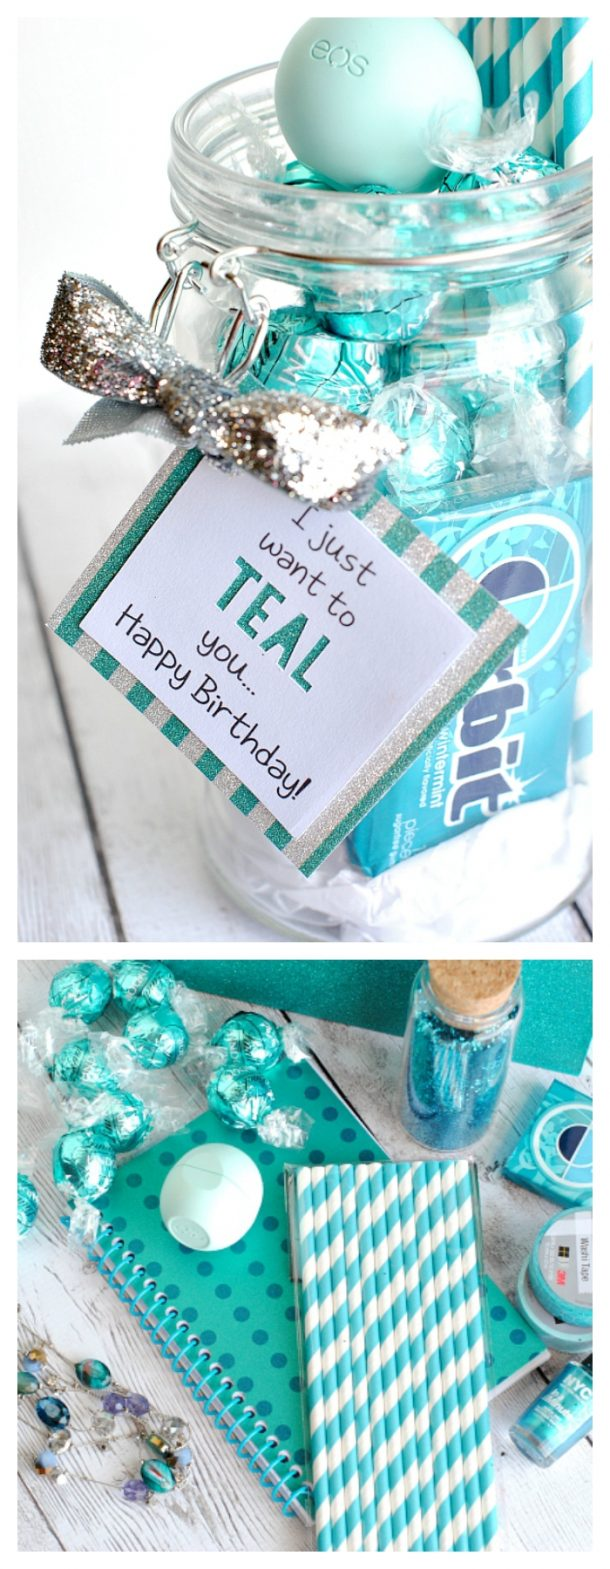 Do it yourself gift basket ideas for all occasions landeelu do it yourself gift basket ideas for all occassions teal theme gift theme idea with solutioingenieria Images